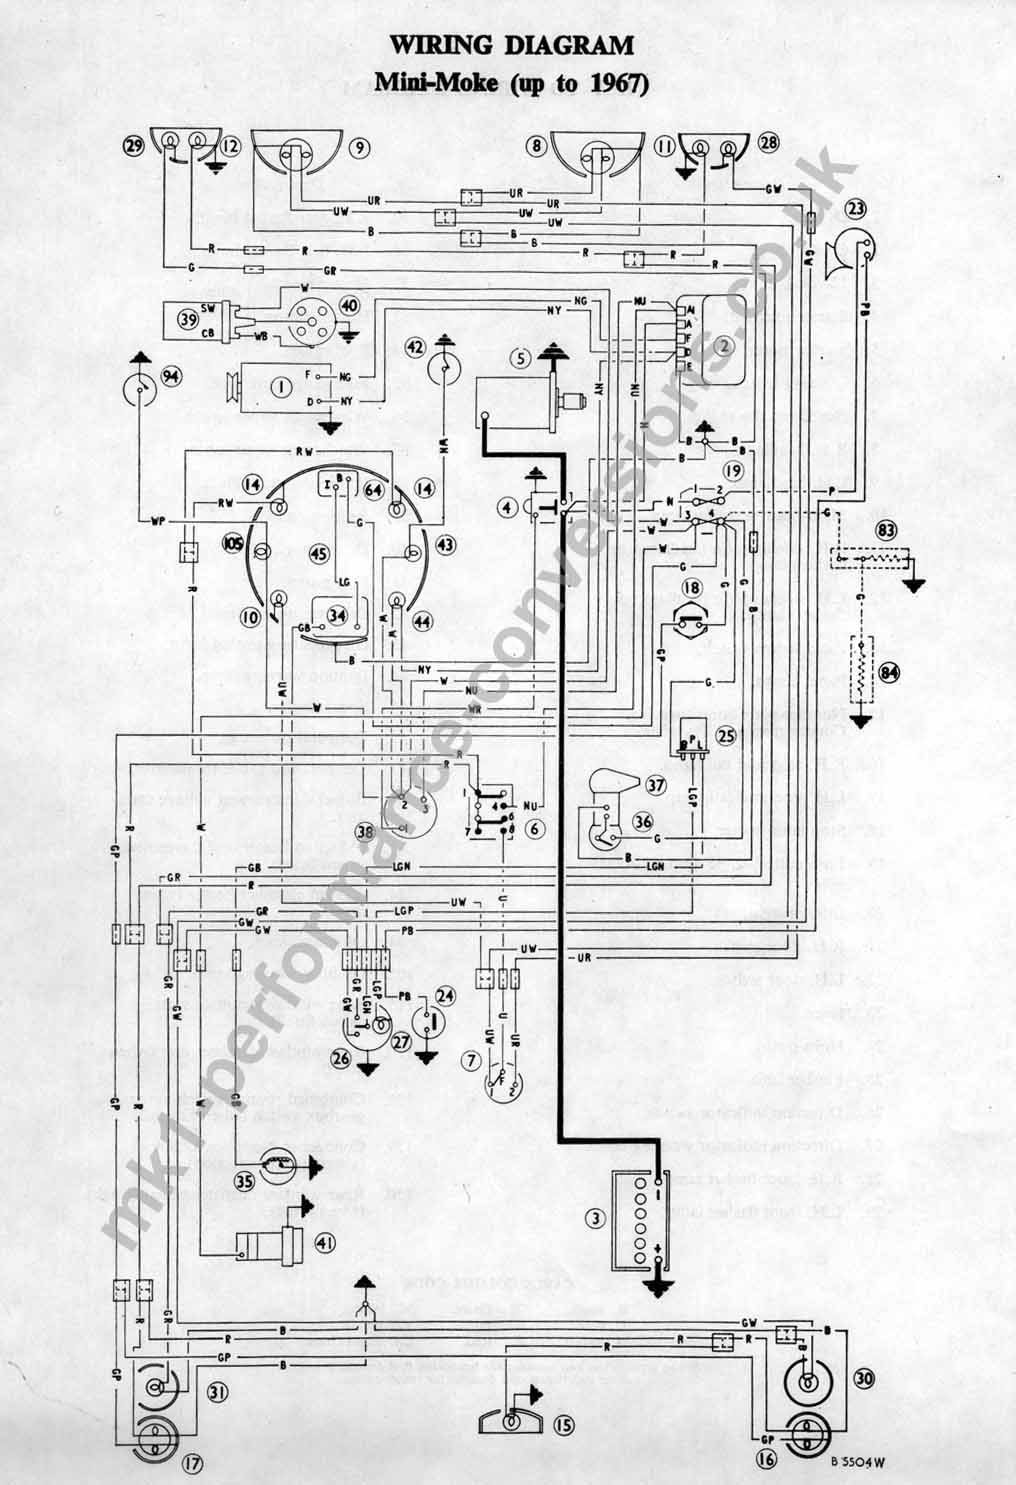 Rover Mini Mpi Wiring Diagram House Symbols Range Fuse Box Private Sharing About Austin Cooper Rh 107 191 48 154 Metro Width 6r4